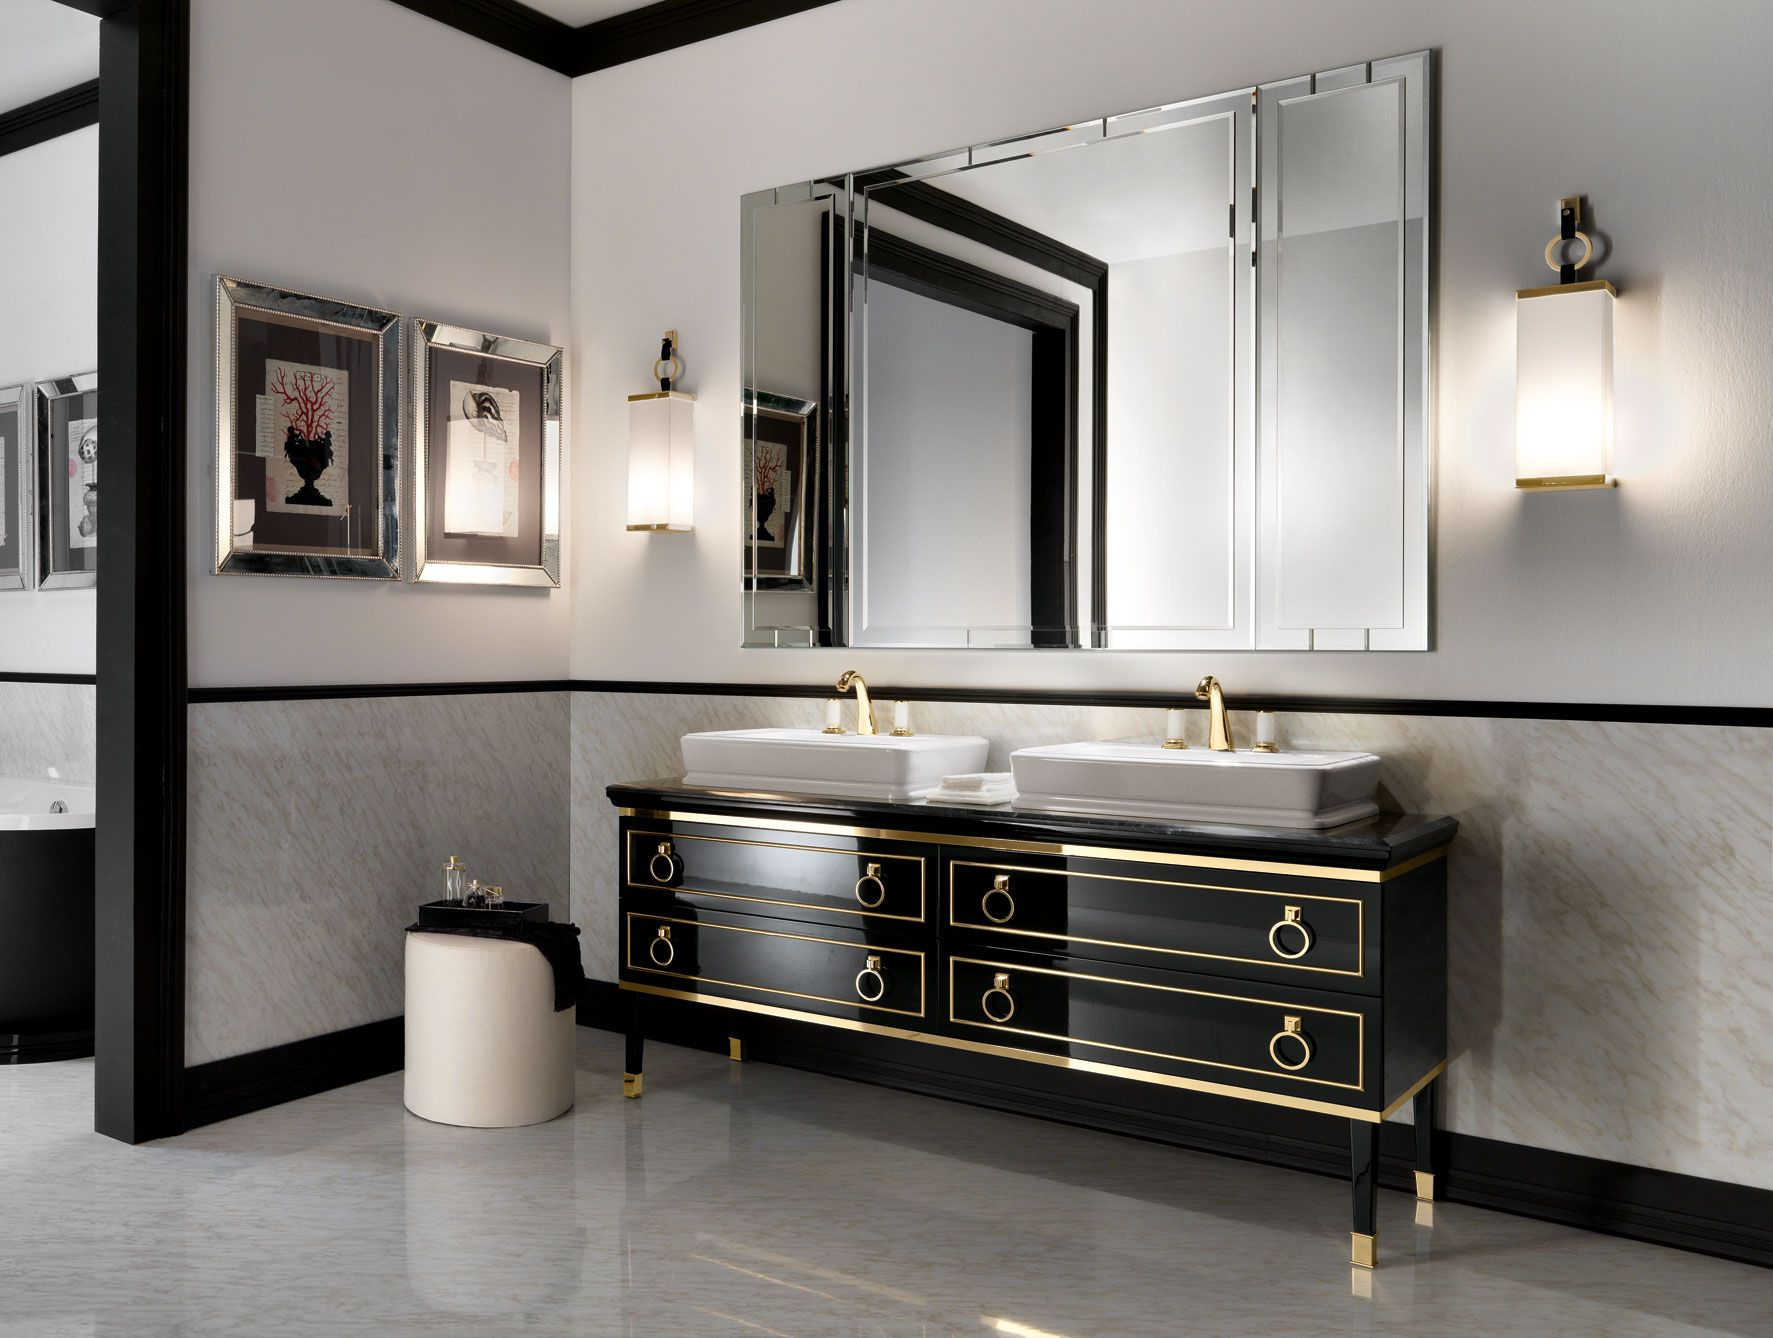 Legitimate Reasons To Invest In Luxury Bathroom Vanities Designalls In 2020 Luxury Bathroom Vanities Art Deco Bathroom Vanity Art Deco Bathroom